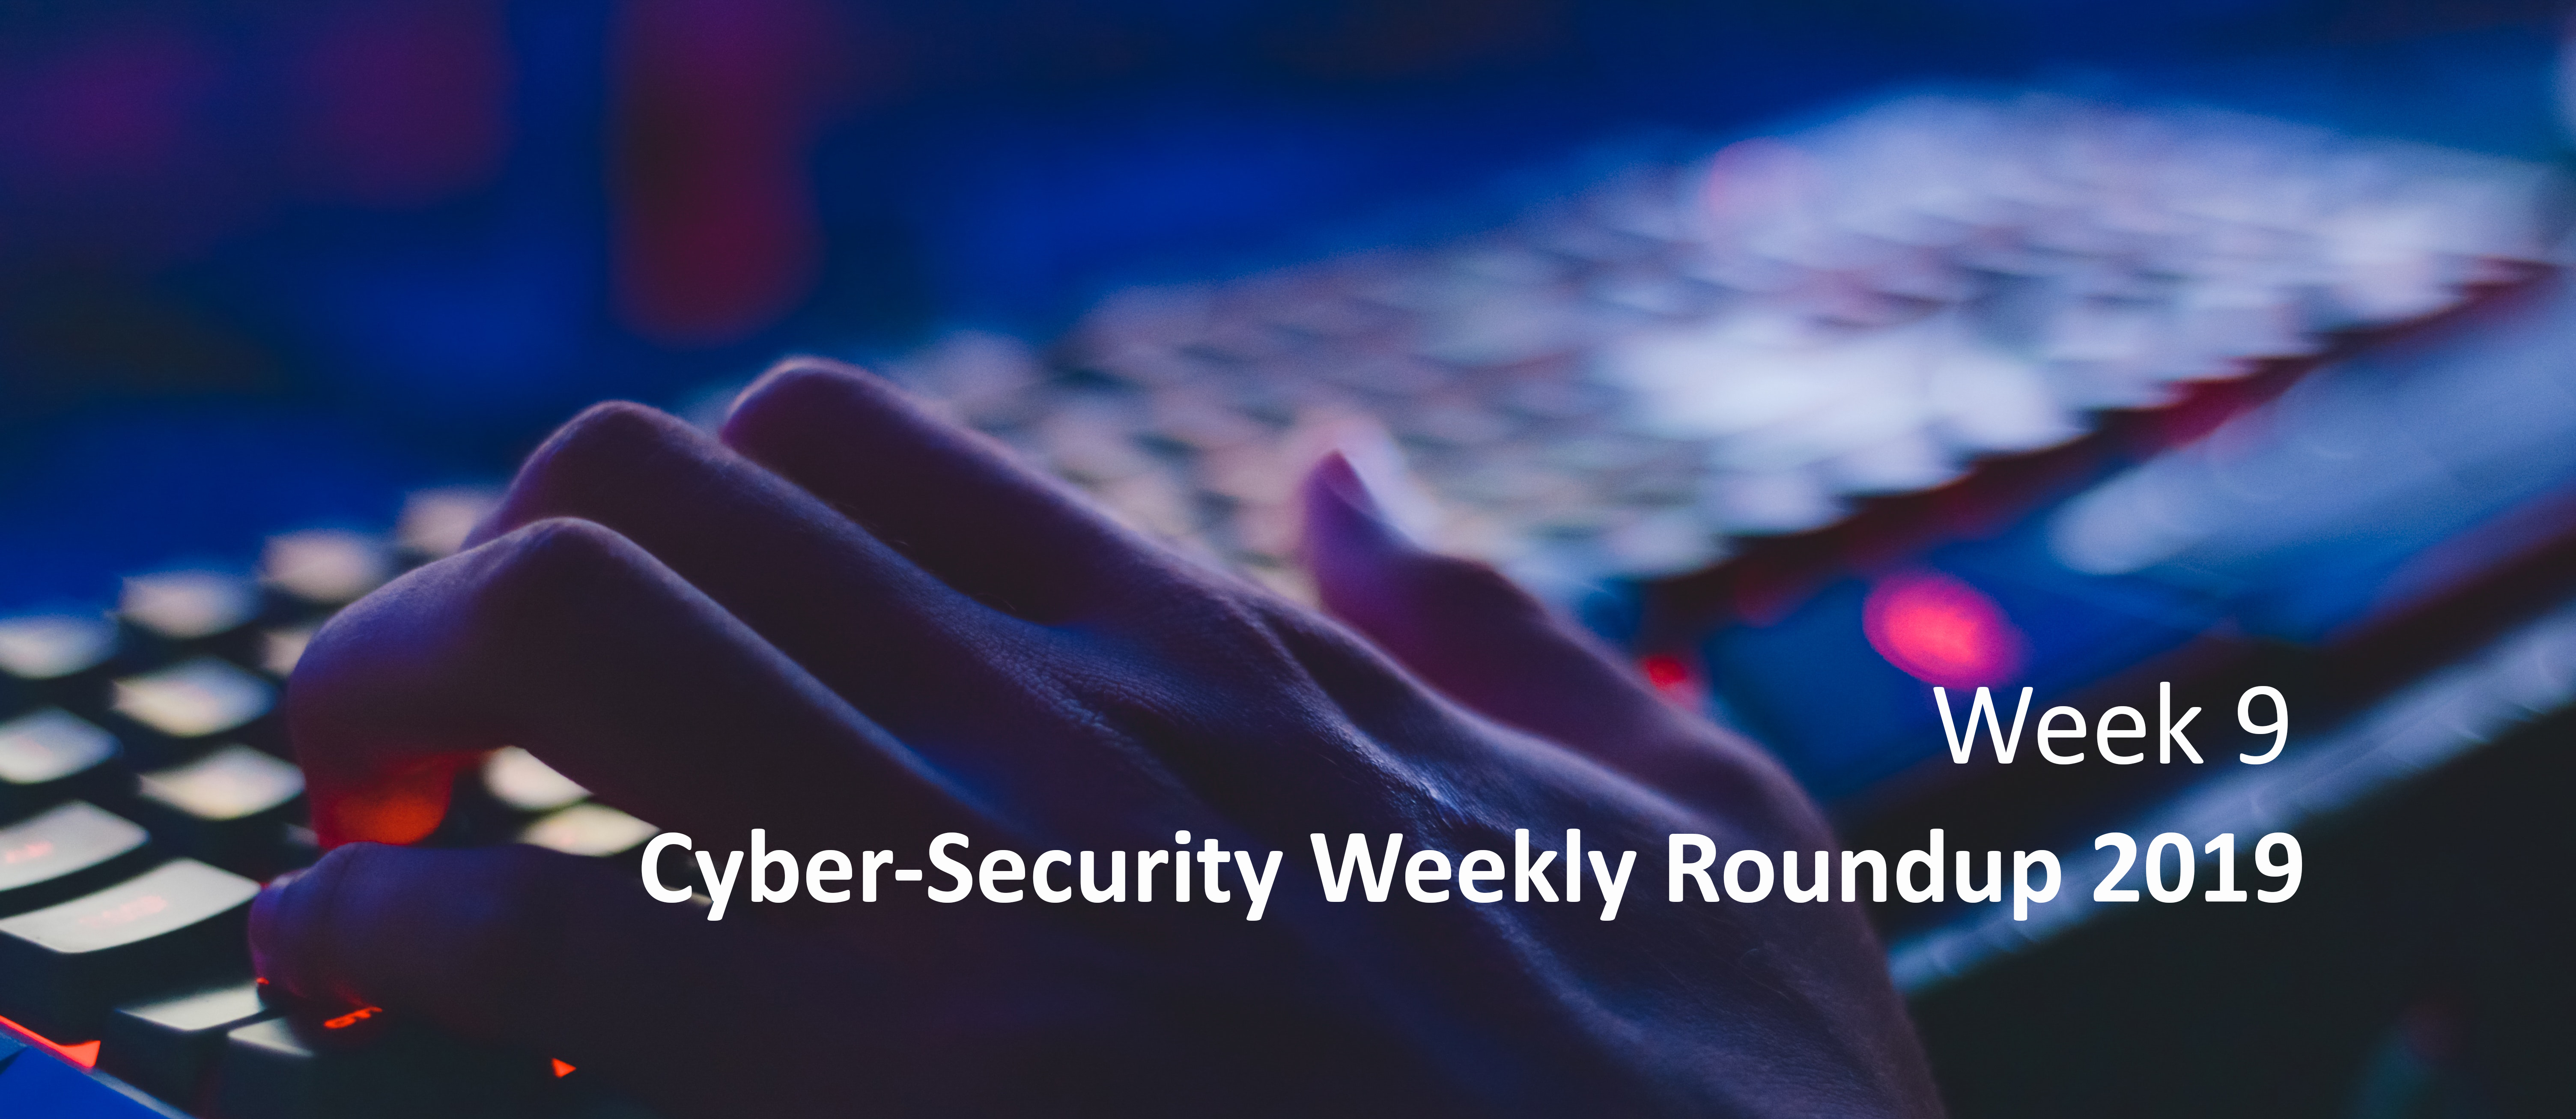 Cyber Attack Weekly Round Up wk 9